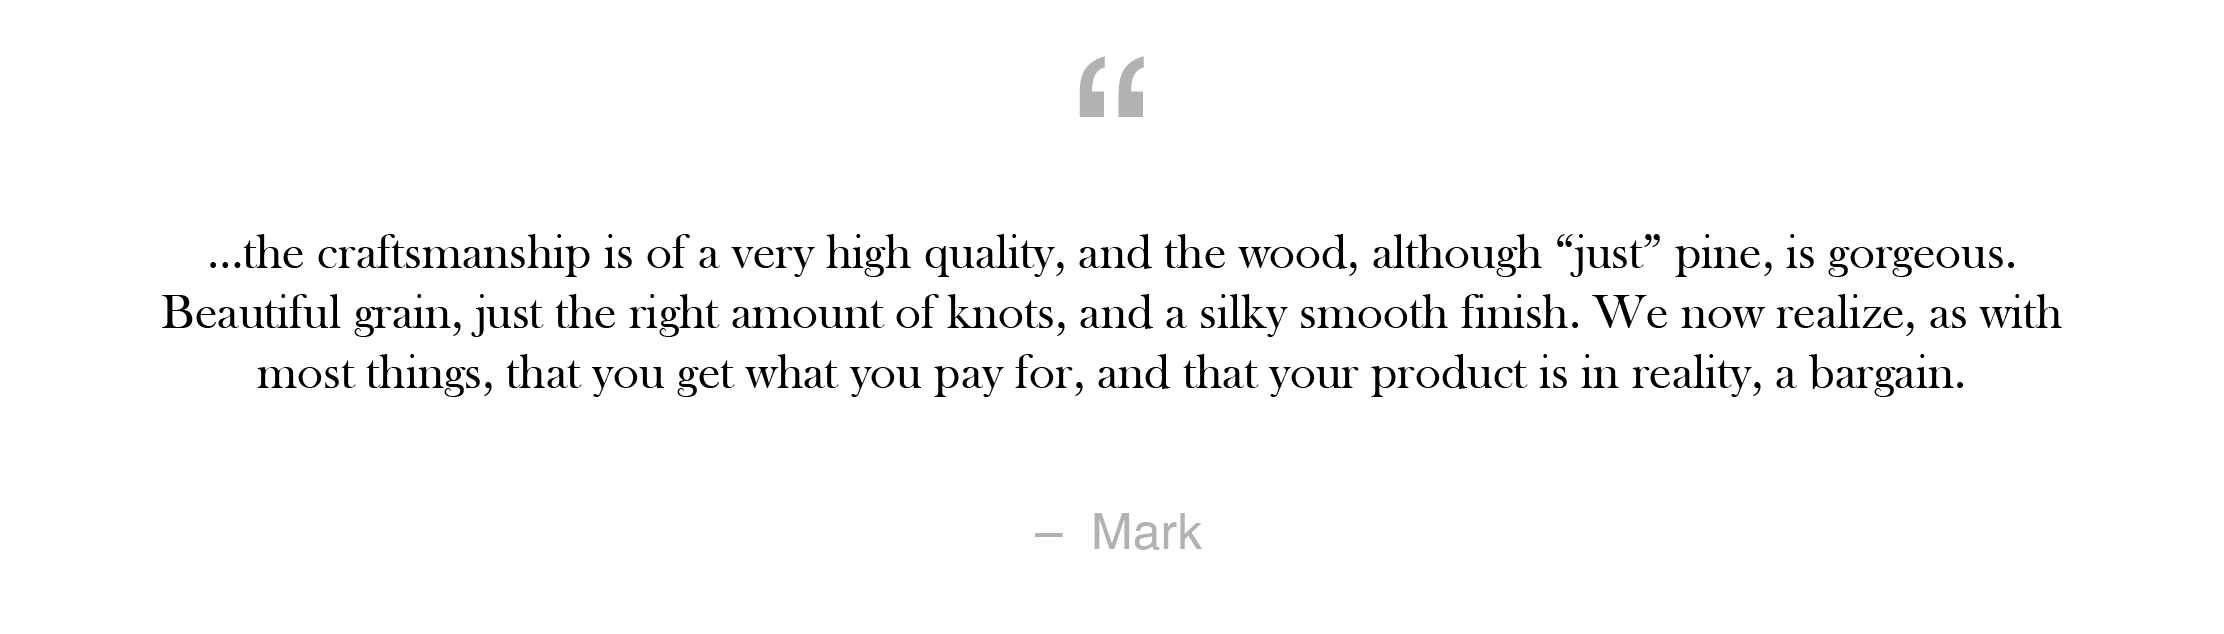 Quote#1_Mark-01.png